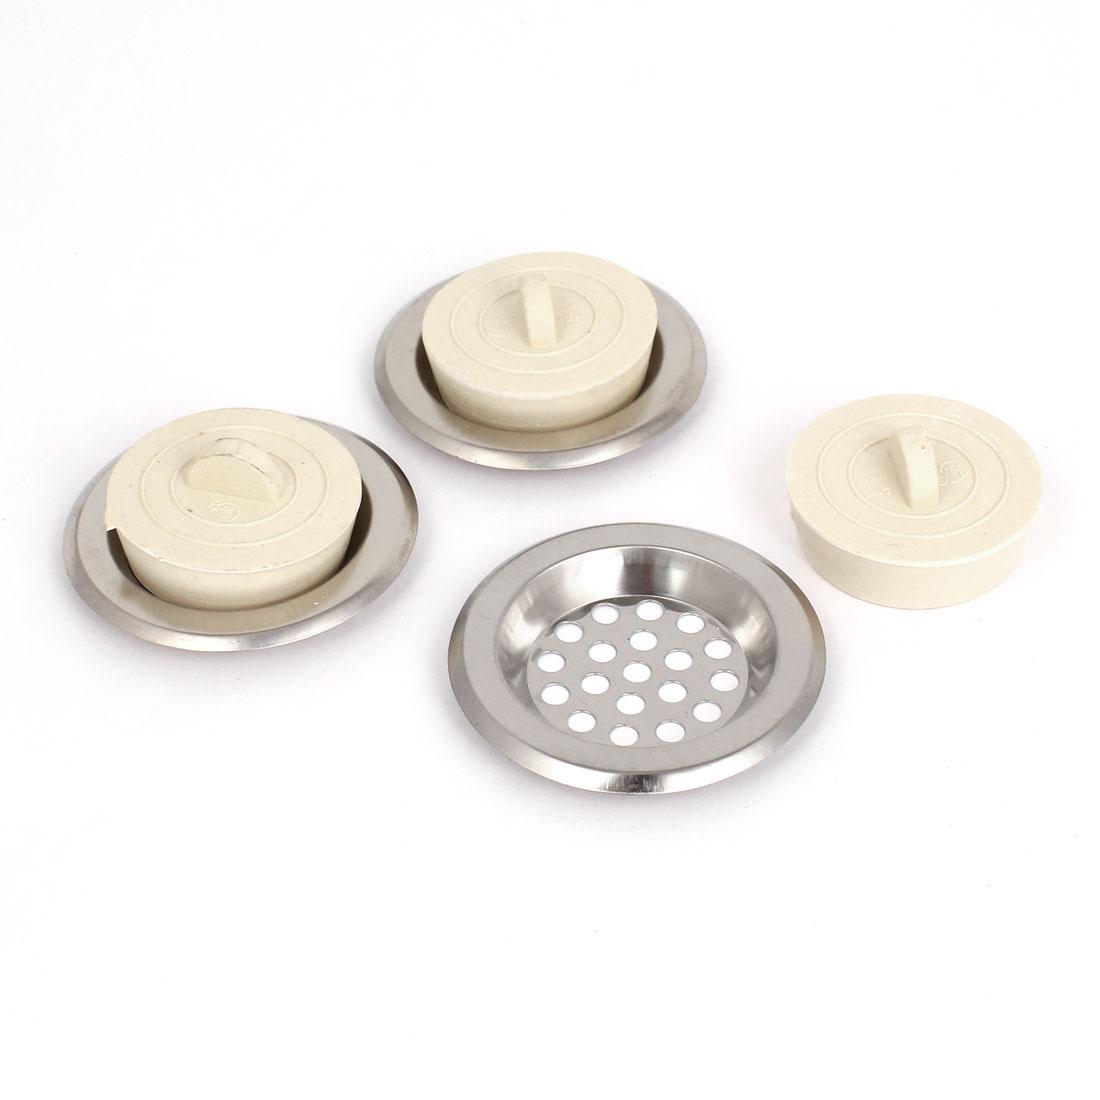 3 Pcs Stainless Steel Sink Strainers for Kitchen Sink Prevents Clogs Off White Stopper Disposal 6cm Diameter